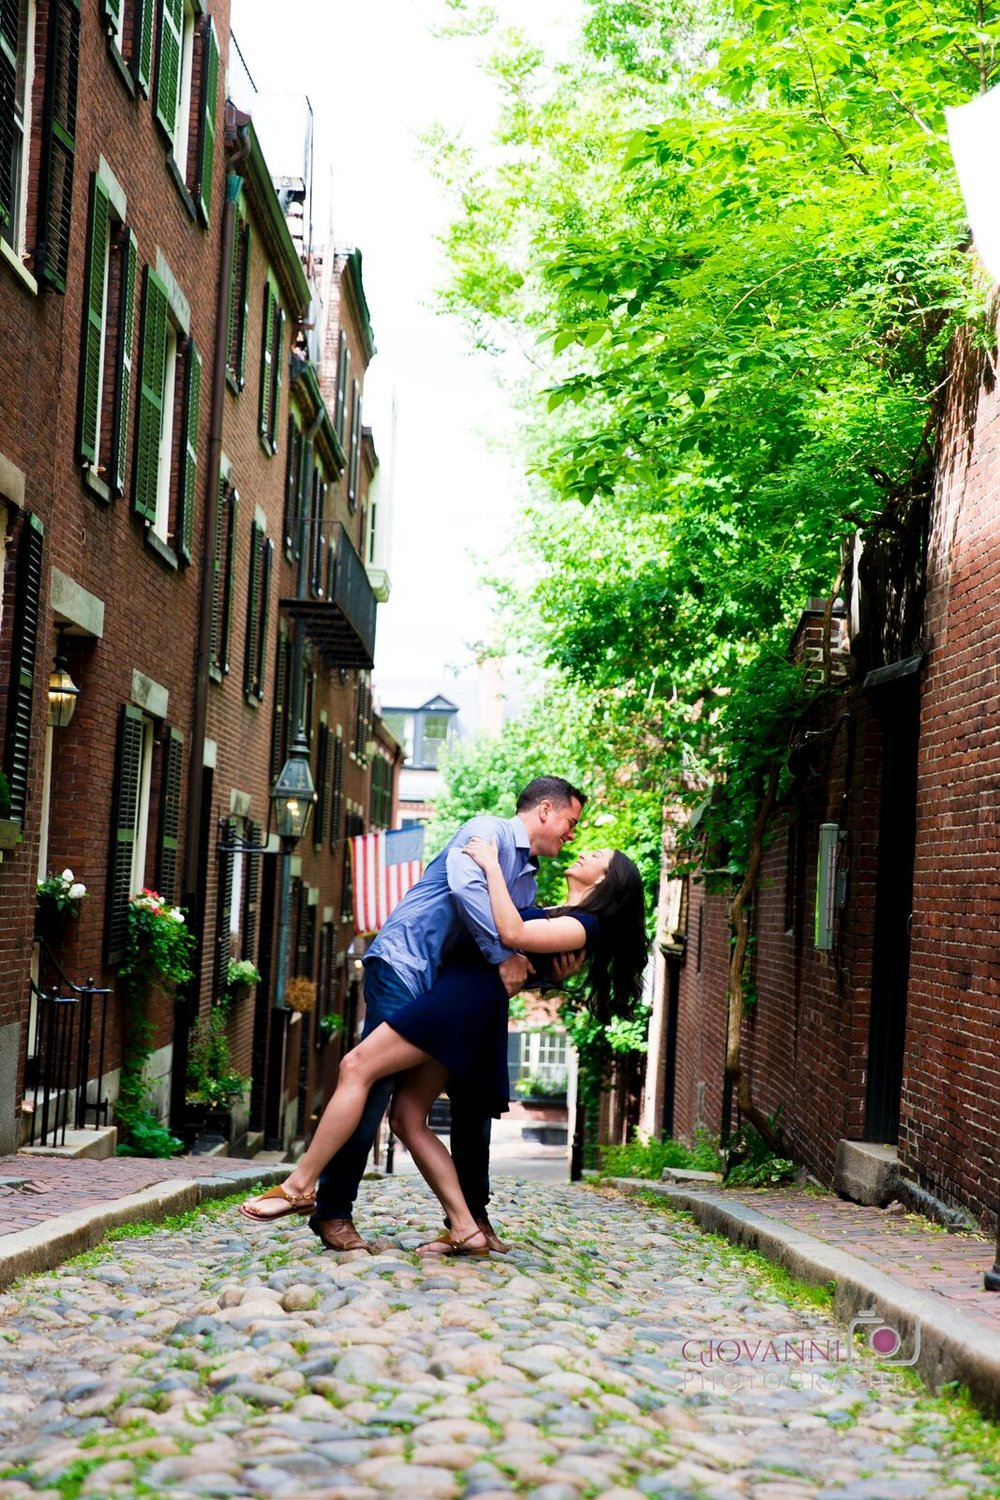 8C2A7669+Giovanni+The+Photographer+Top+Wedding+Photography+Boston+Engagement+Session+Acorn+Street+Boston+Ma.jpg